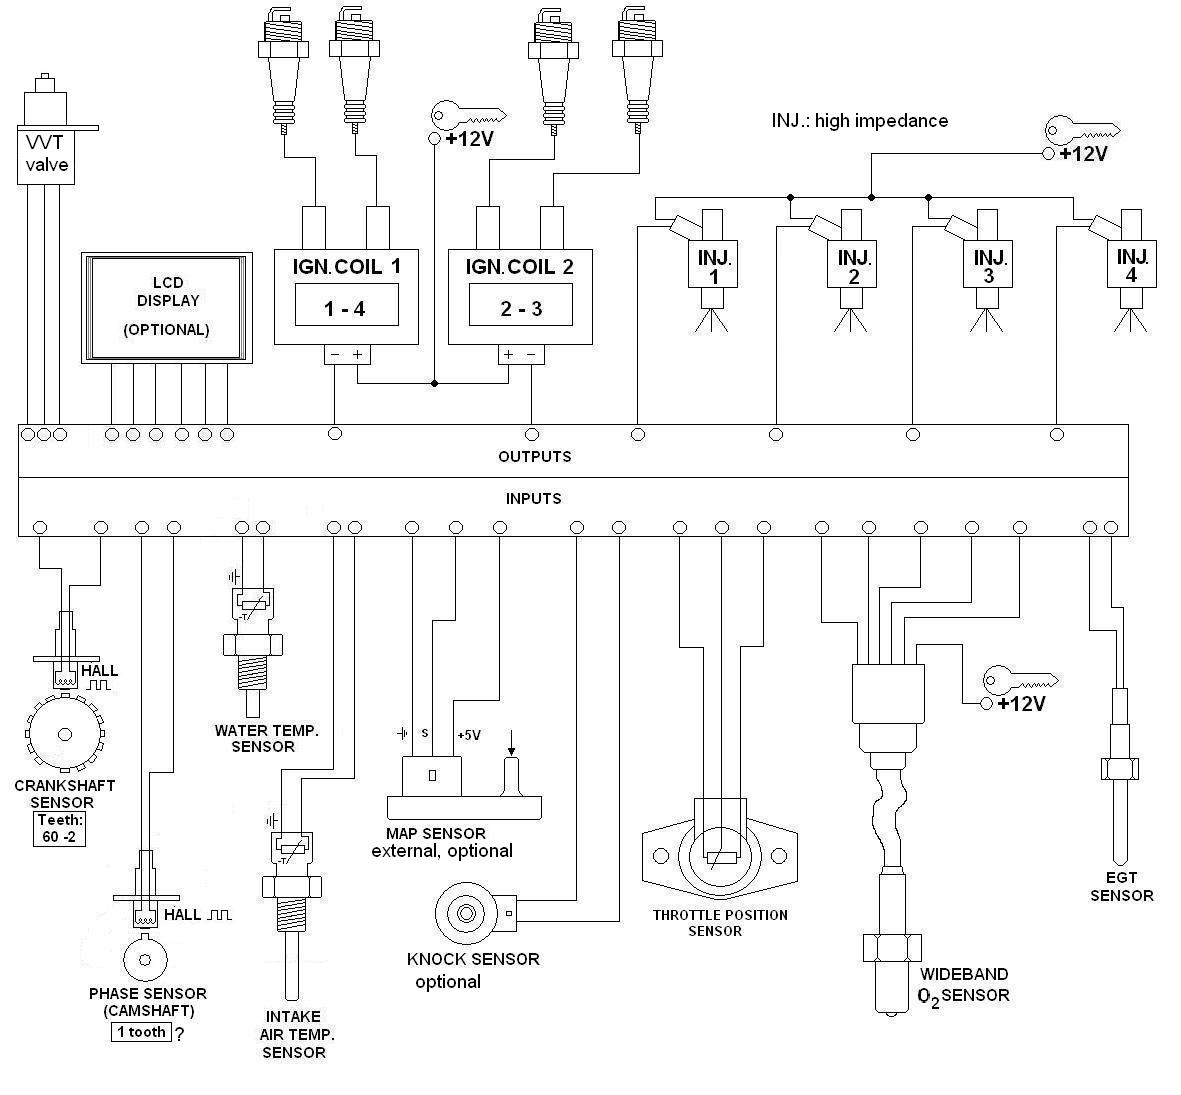 Saab 9 3 Stereo Wiring Diagram As Well 1985 Ford F 250 Wiring Diagram